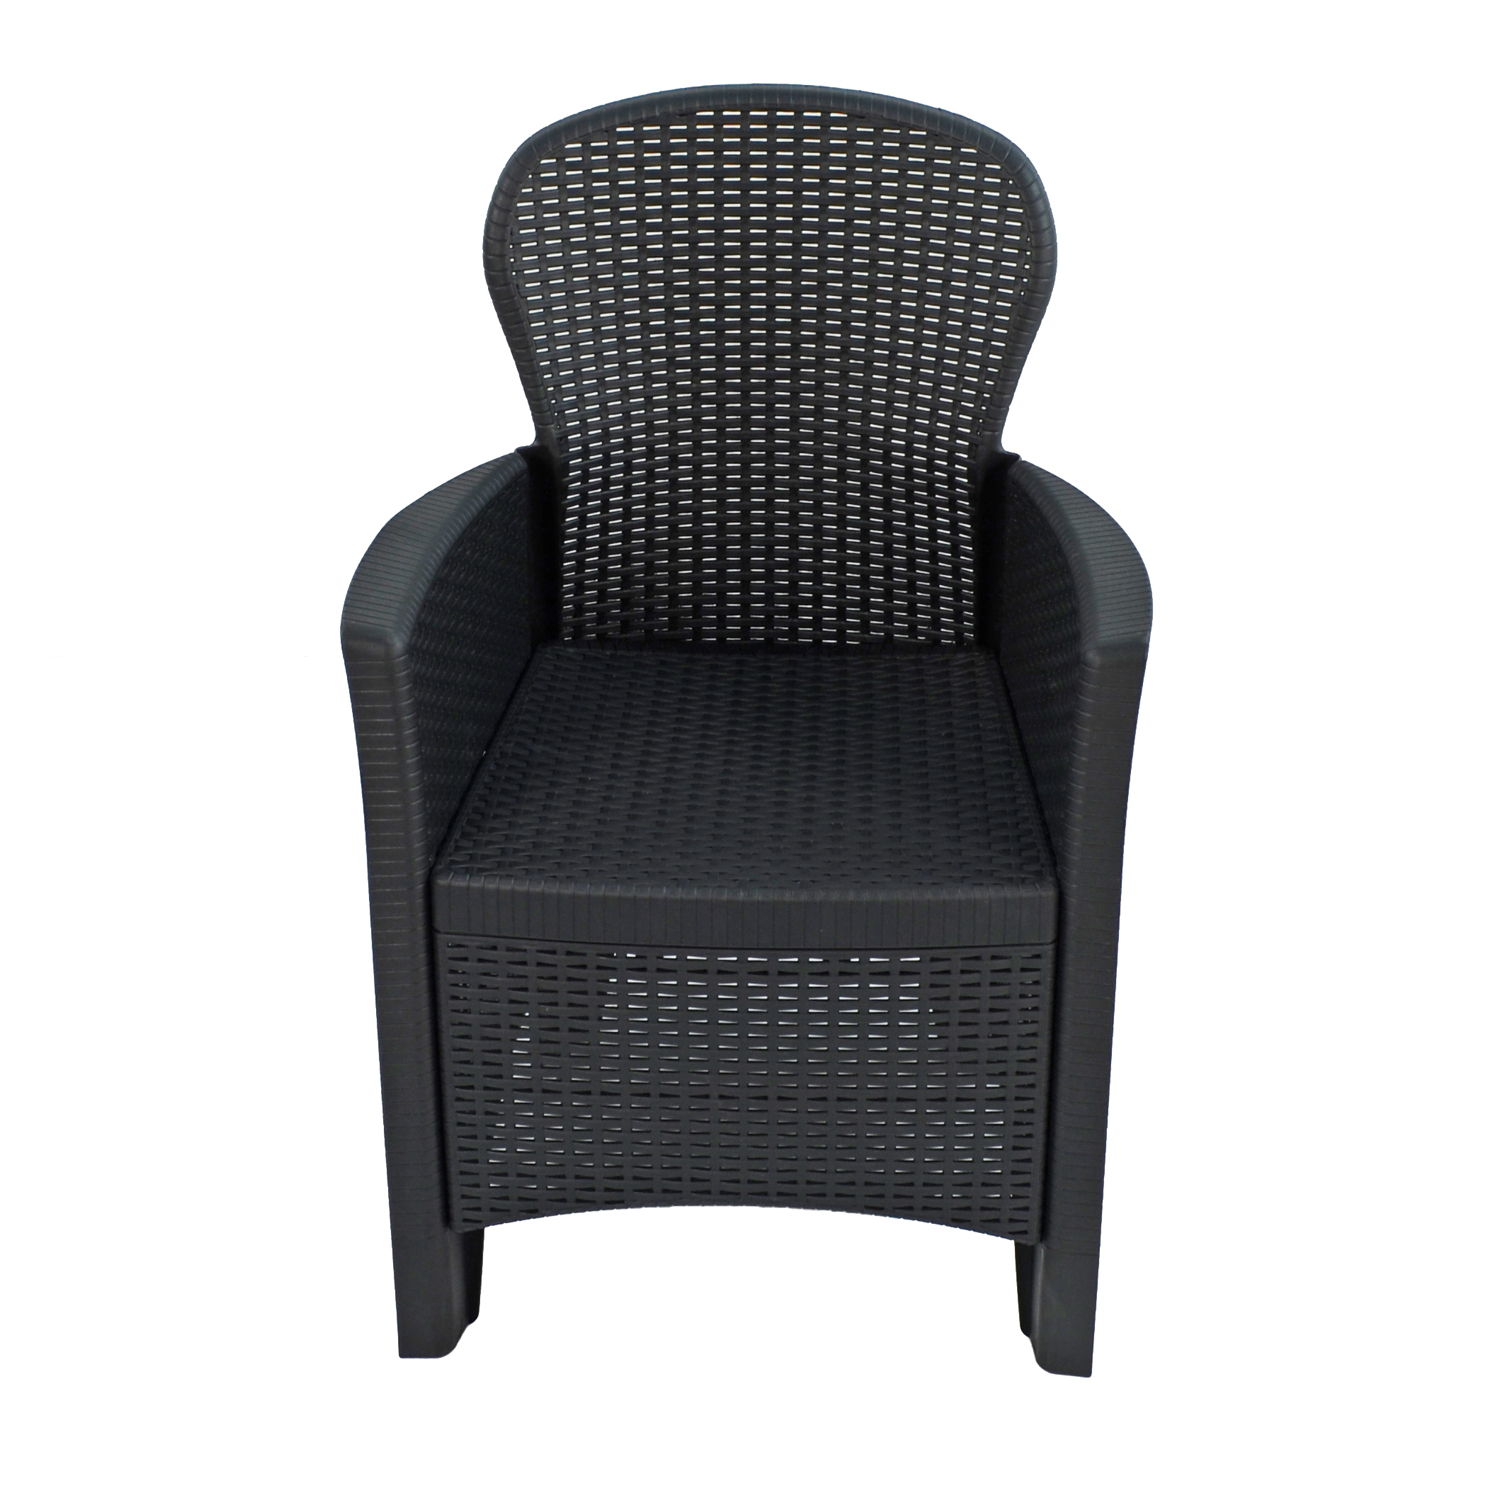 SICILY CHAIR ANTHRACITE FRONT UNDRESSED